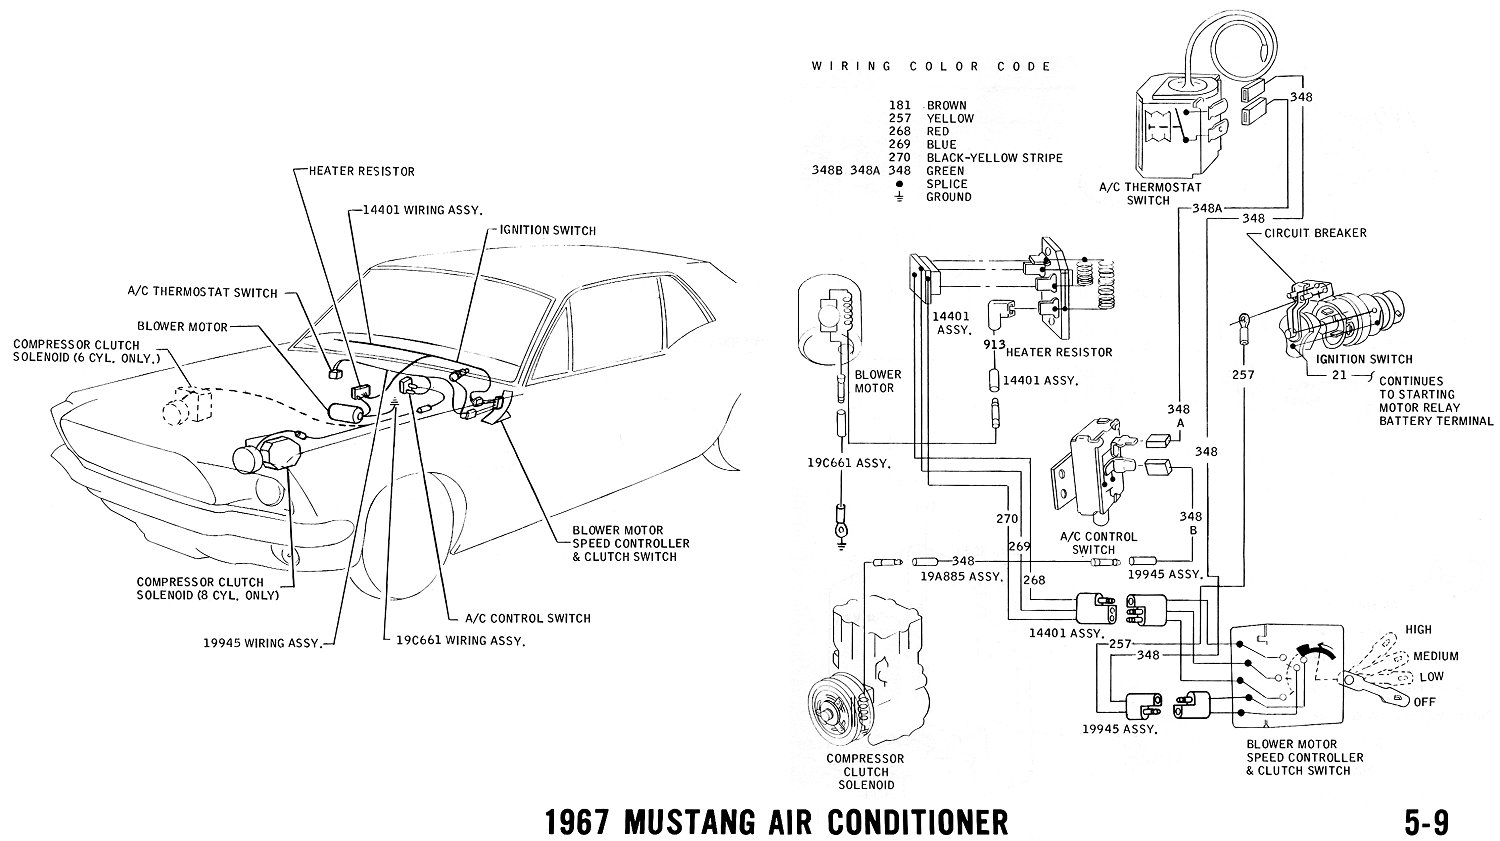 '67 Mustang Renovation Project: Great Charts from Average